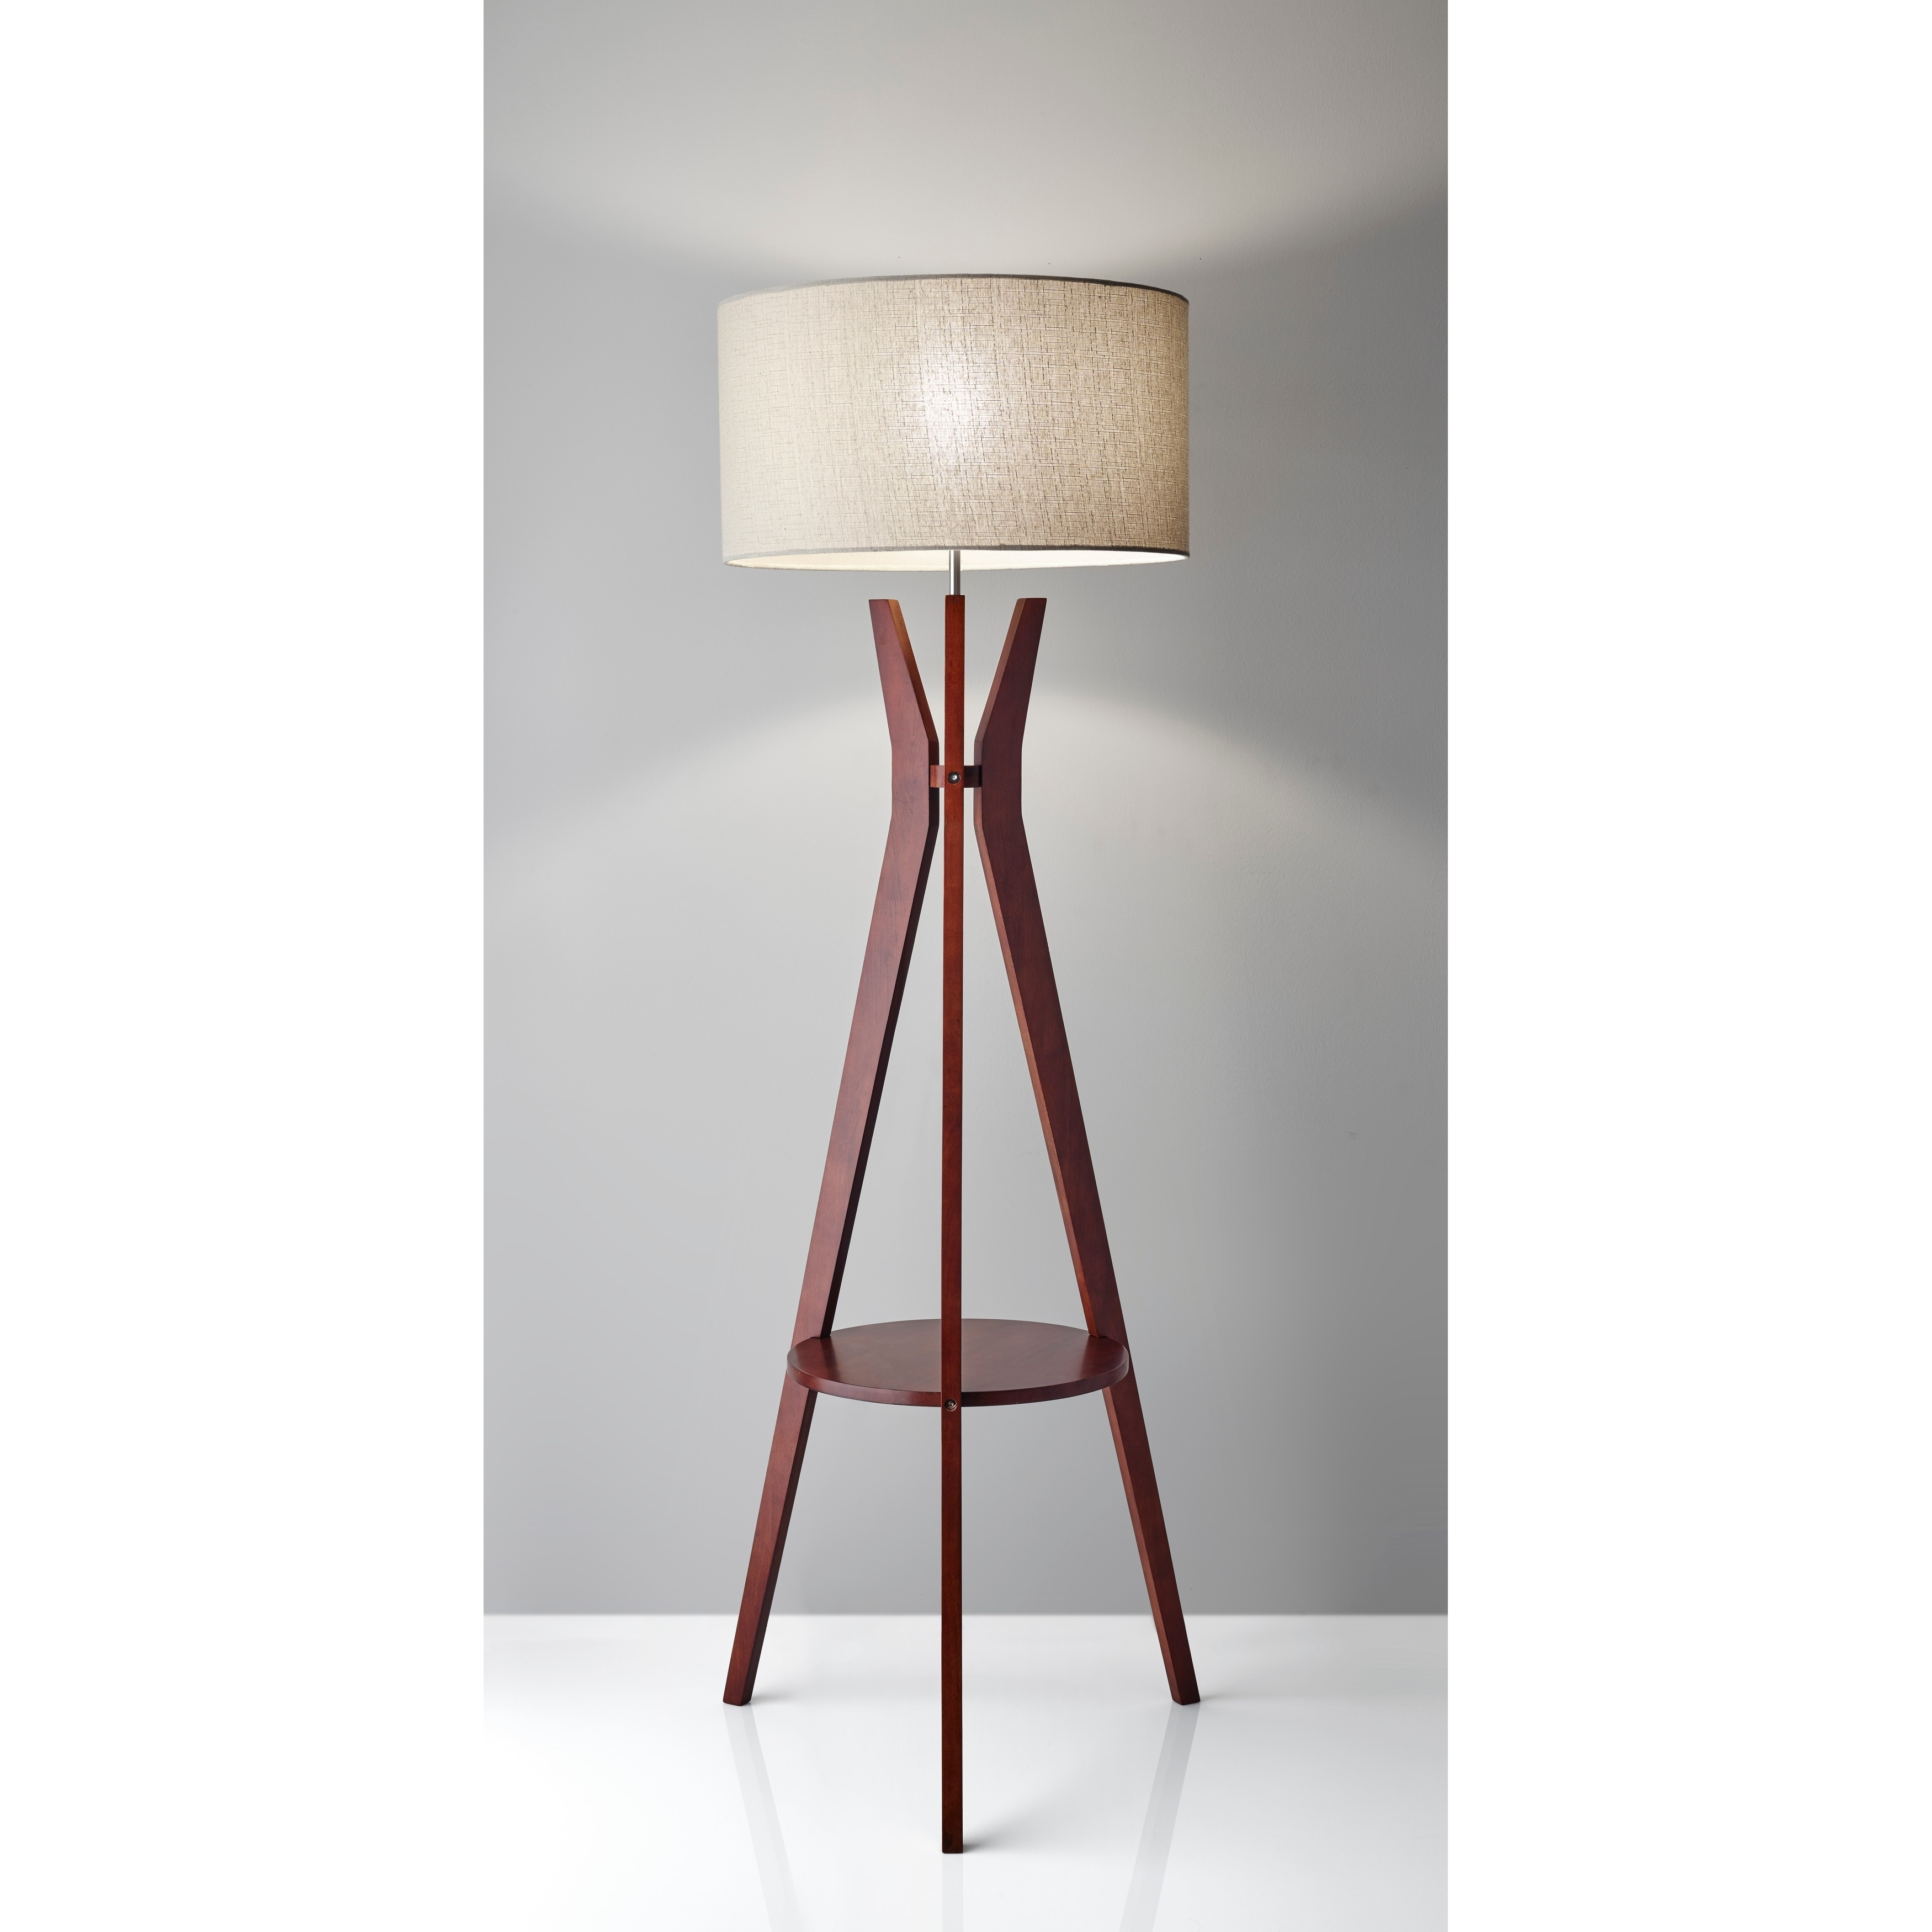 Tripod Floor Lamp With Shelf Adesso Bedford Solid Walnut Wood Tripod Shelf Floor Lamp